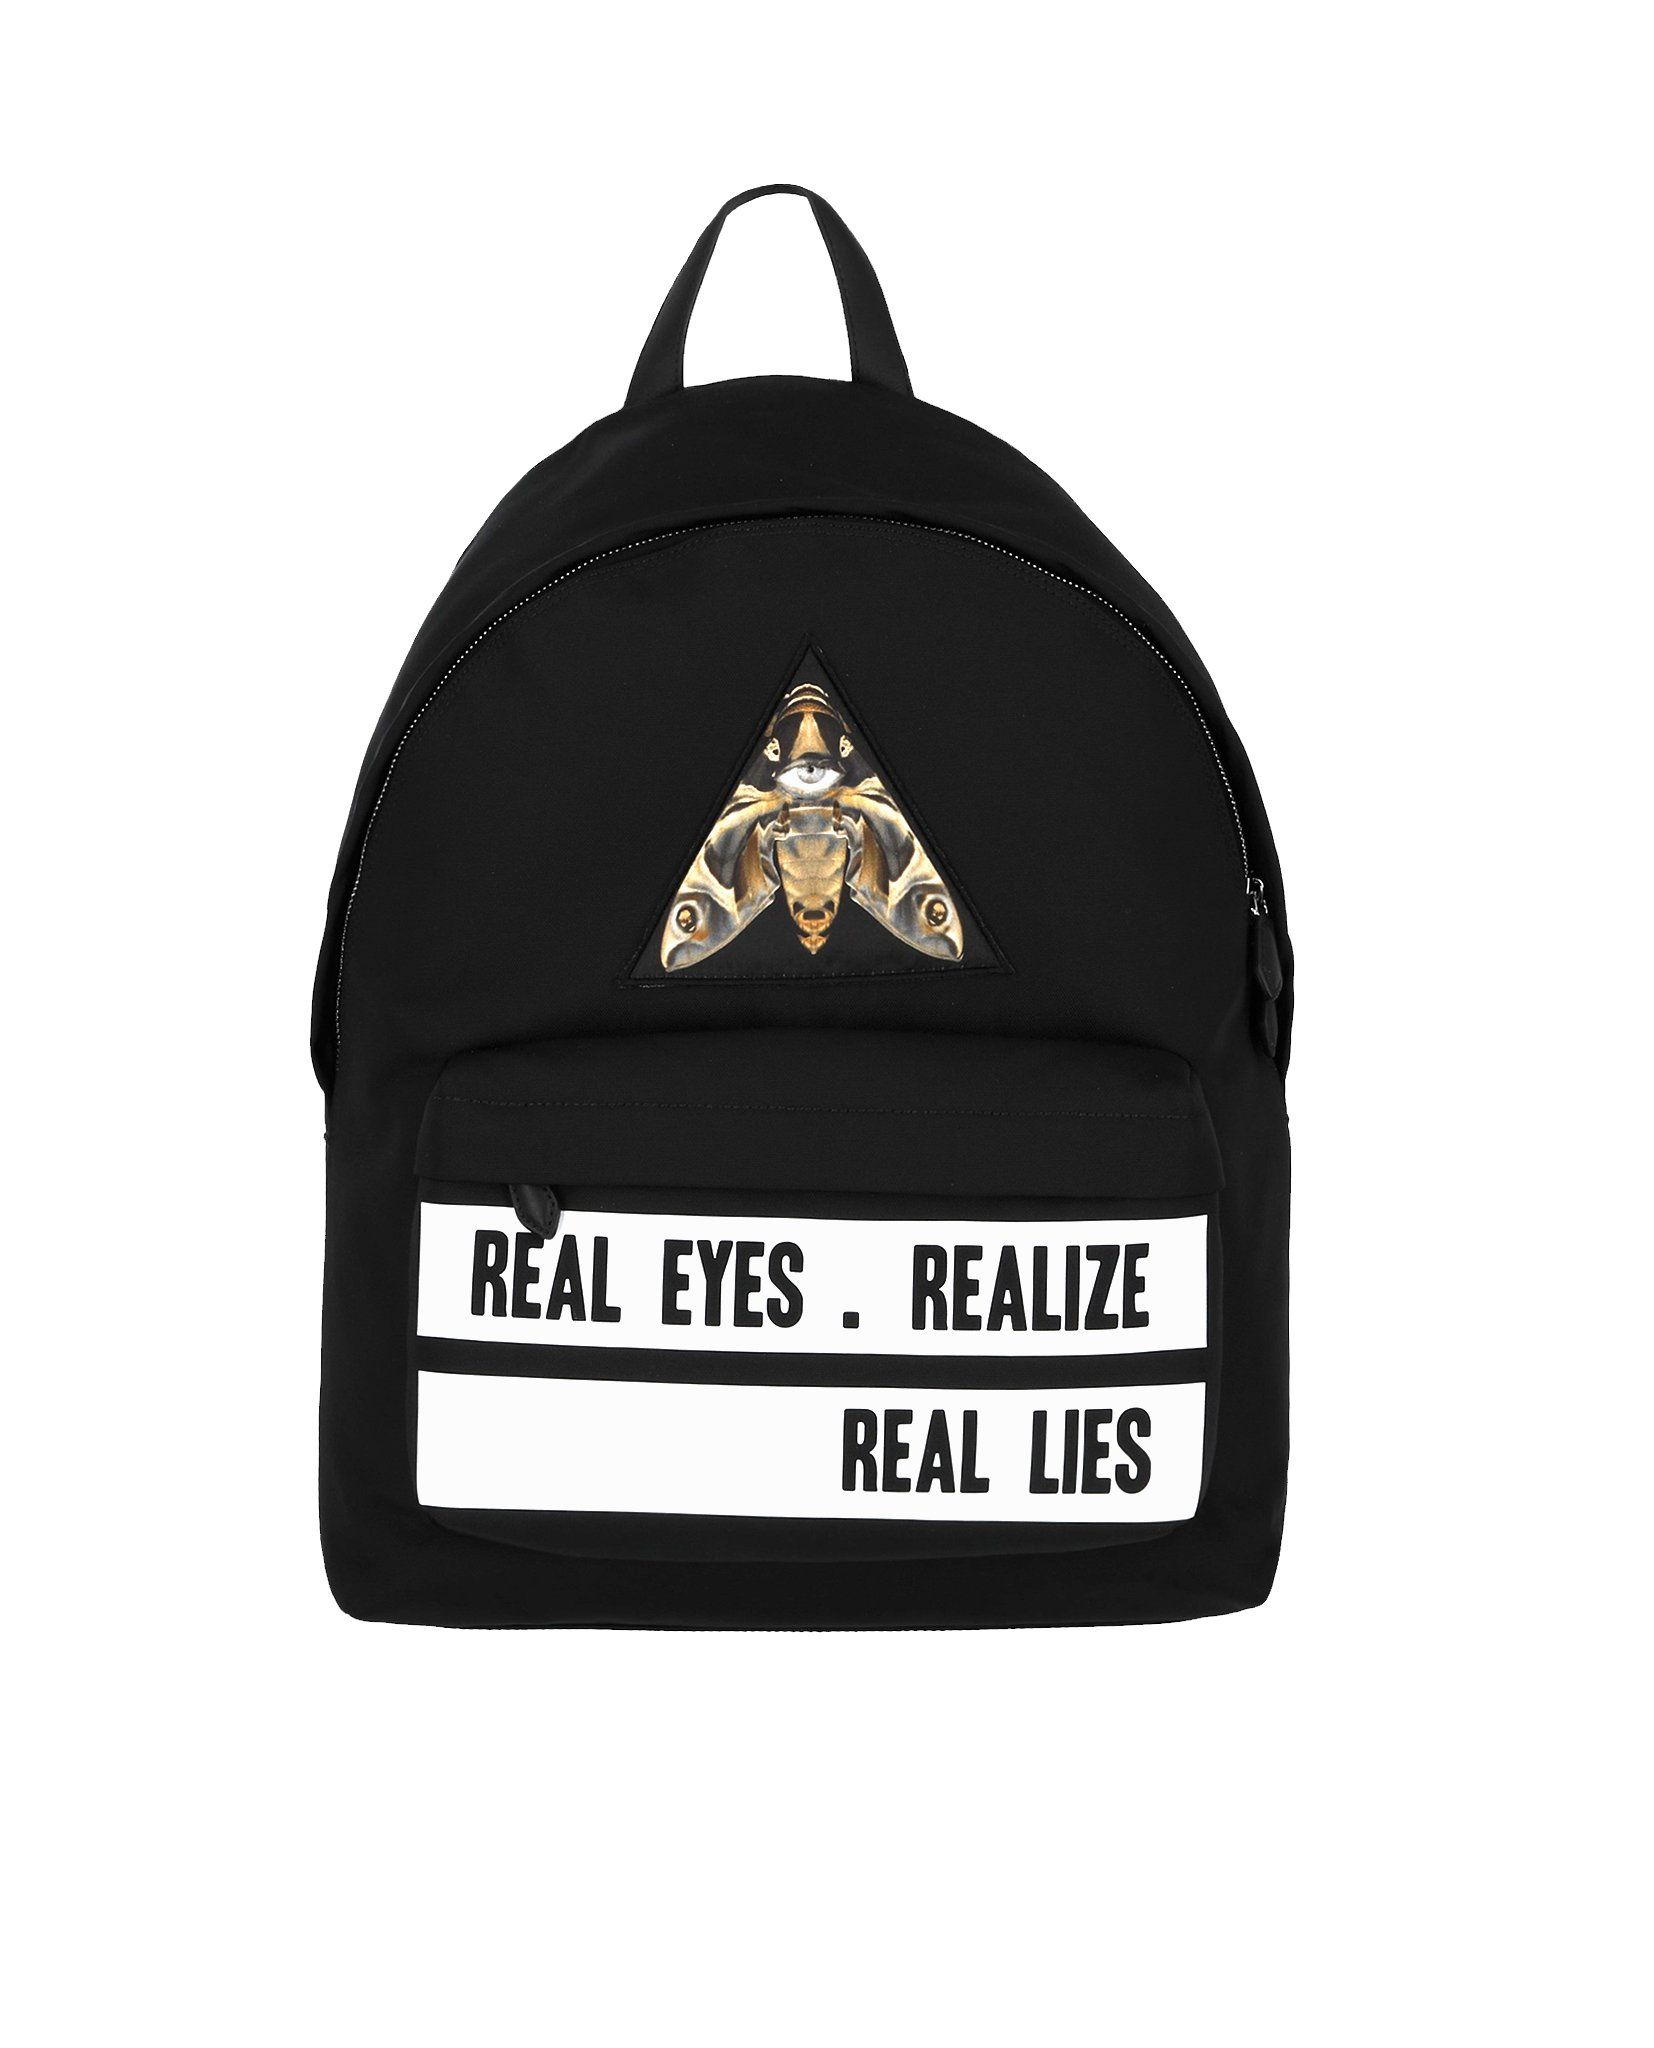 Givenchy Real Eyes Realize Real Lies Backpack  1cbc4100411f9